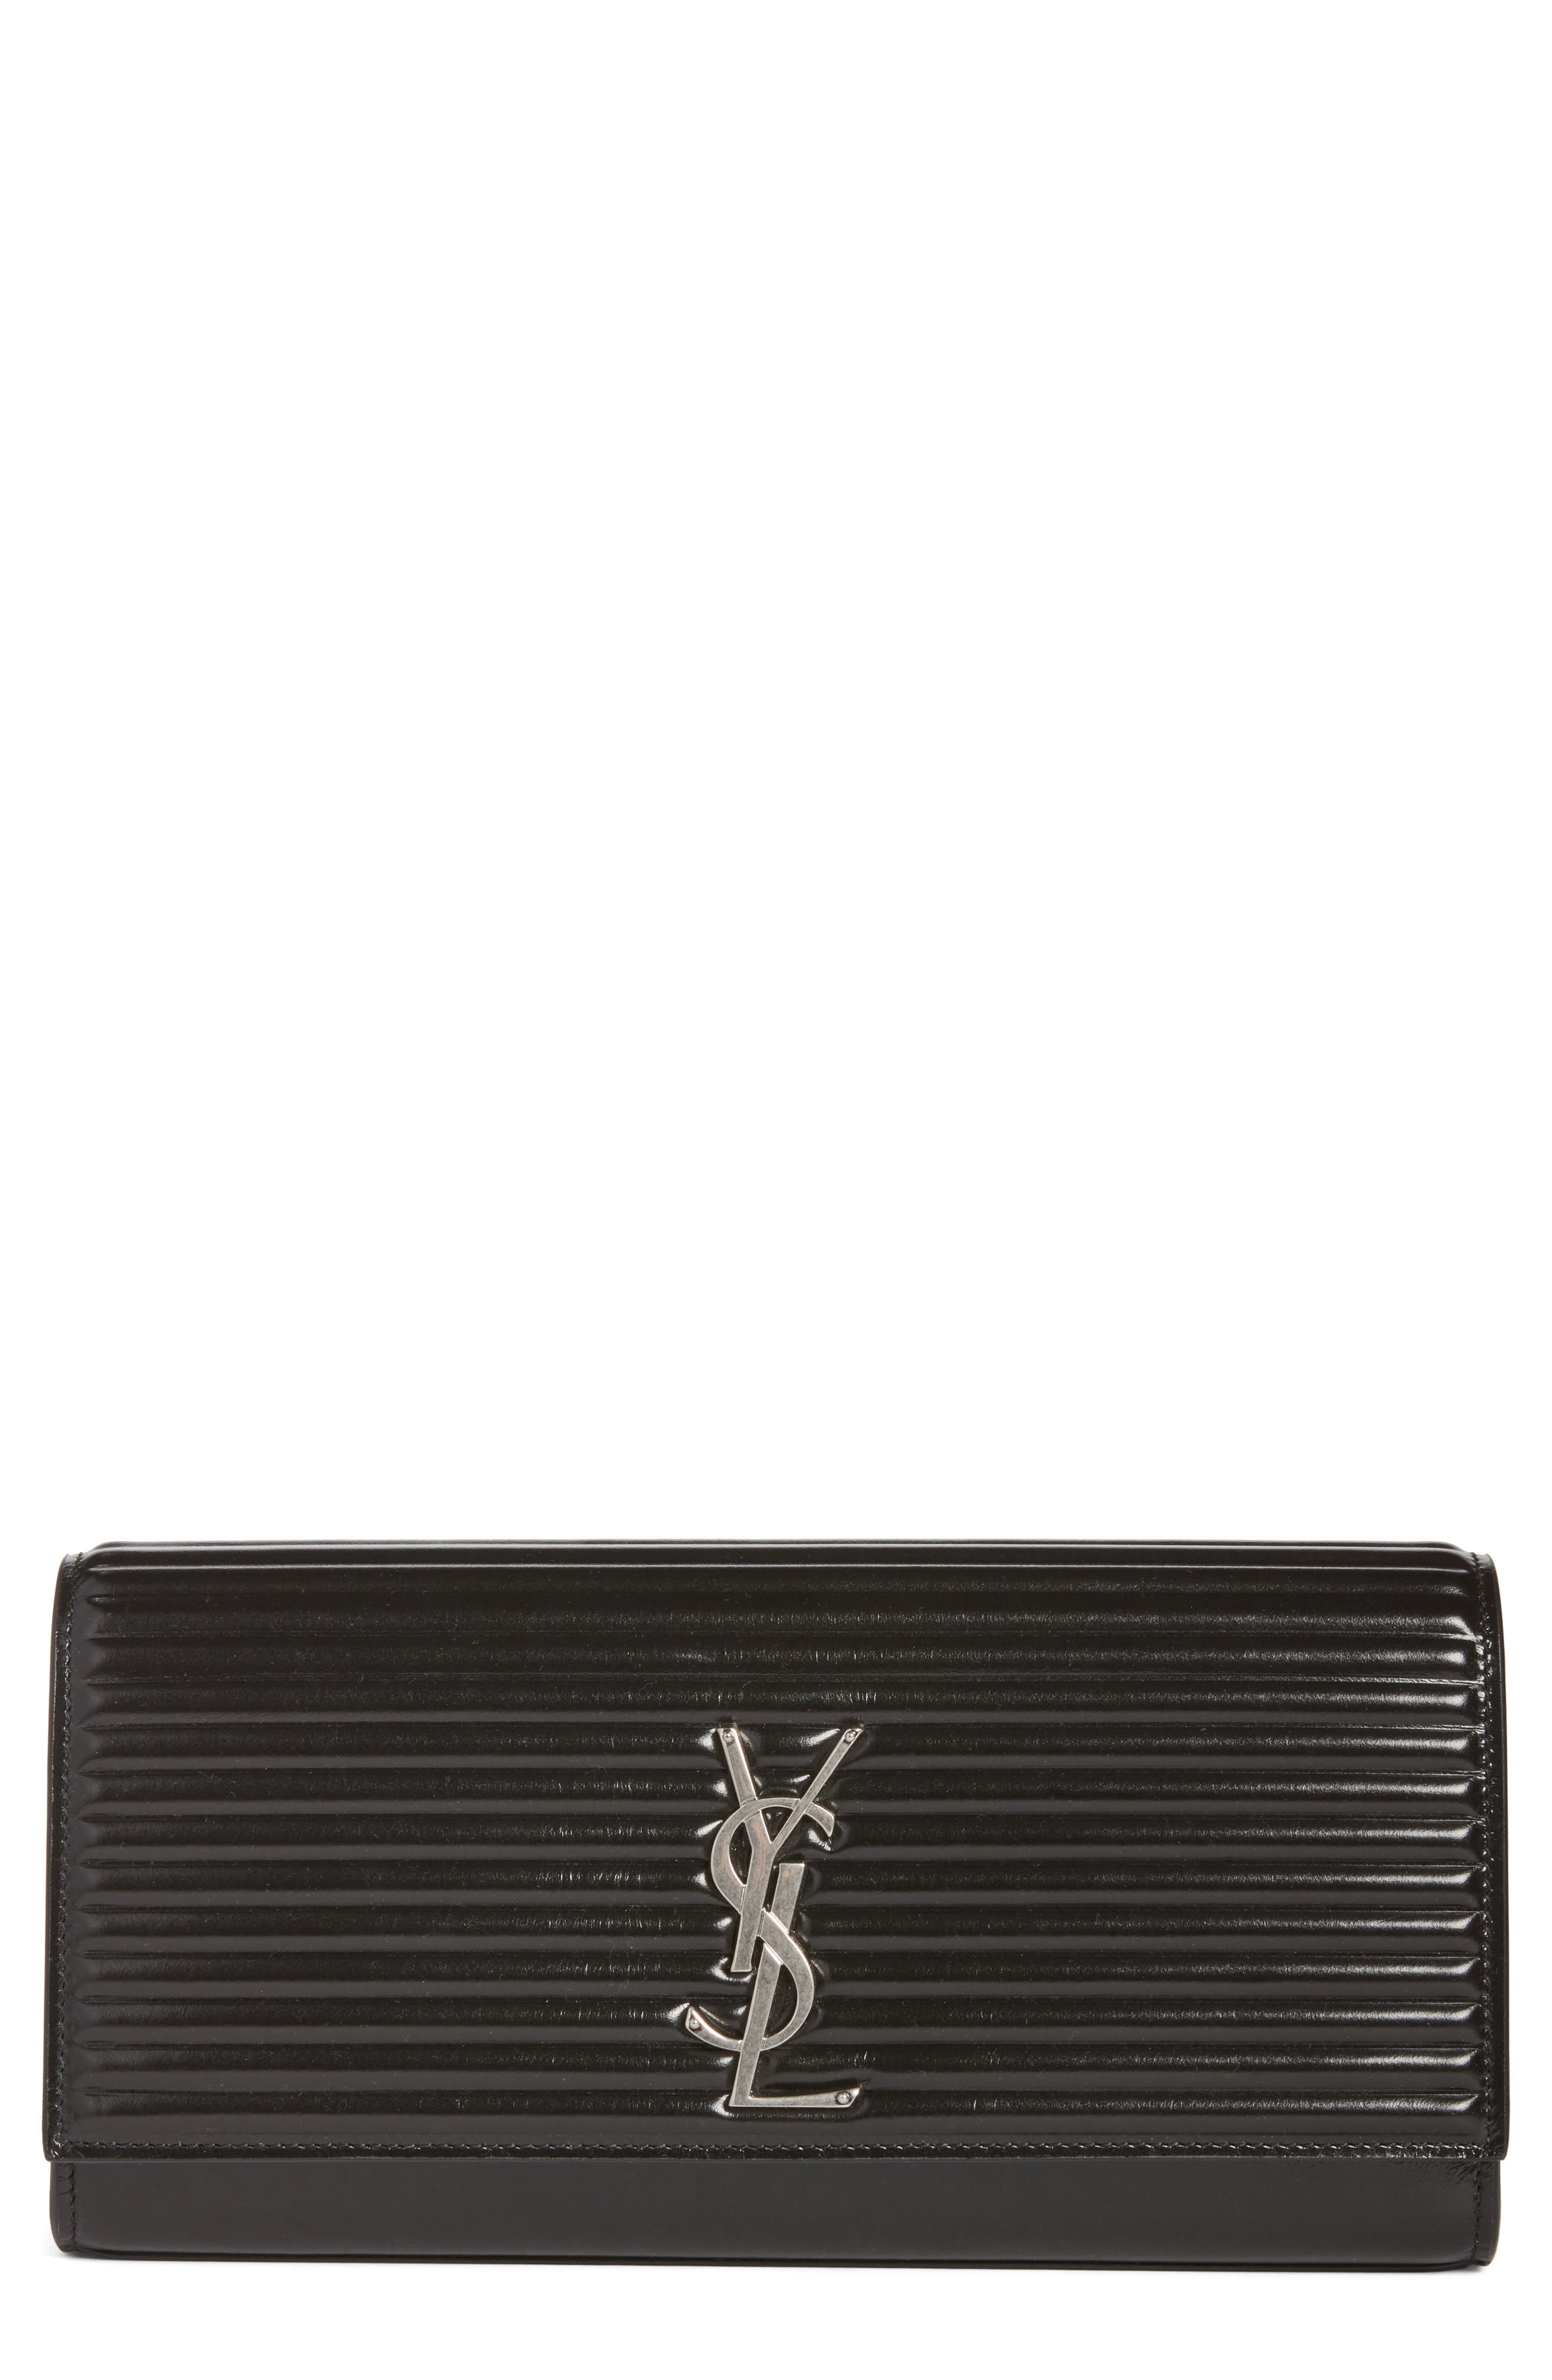 Kate Opium Leather Clutch,                             Main thumbnail 1, color,                             001